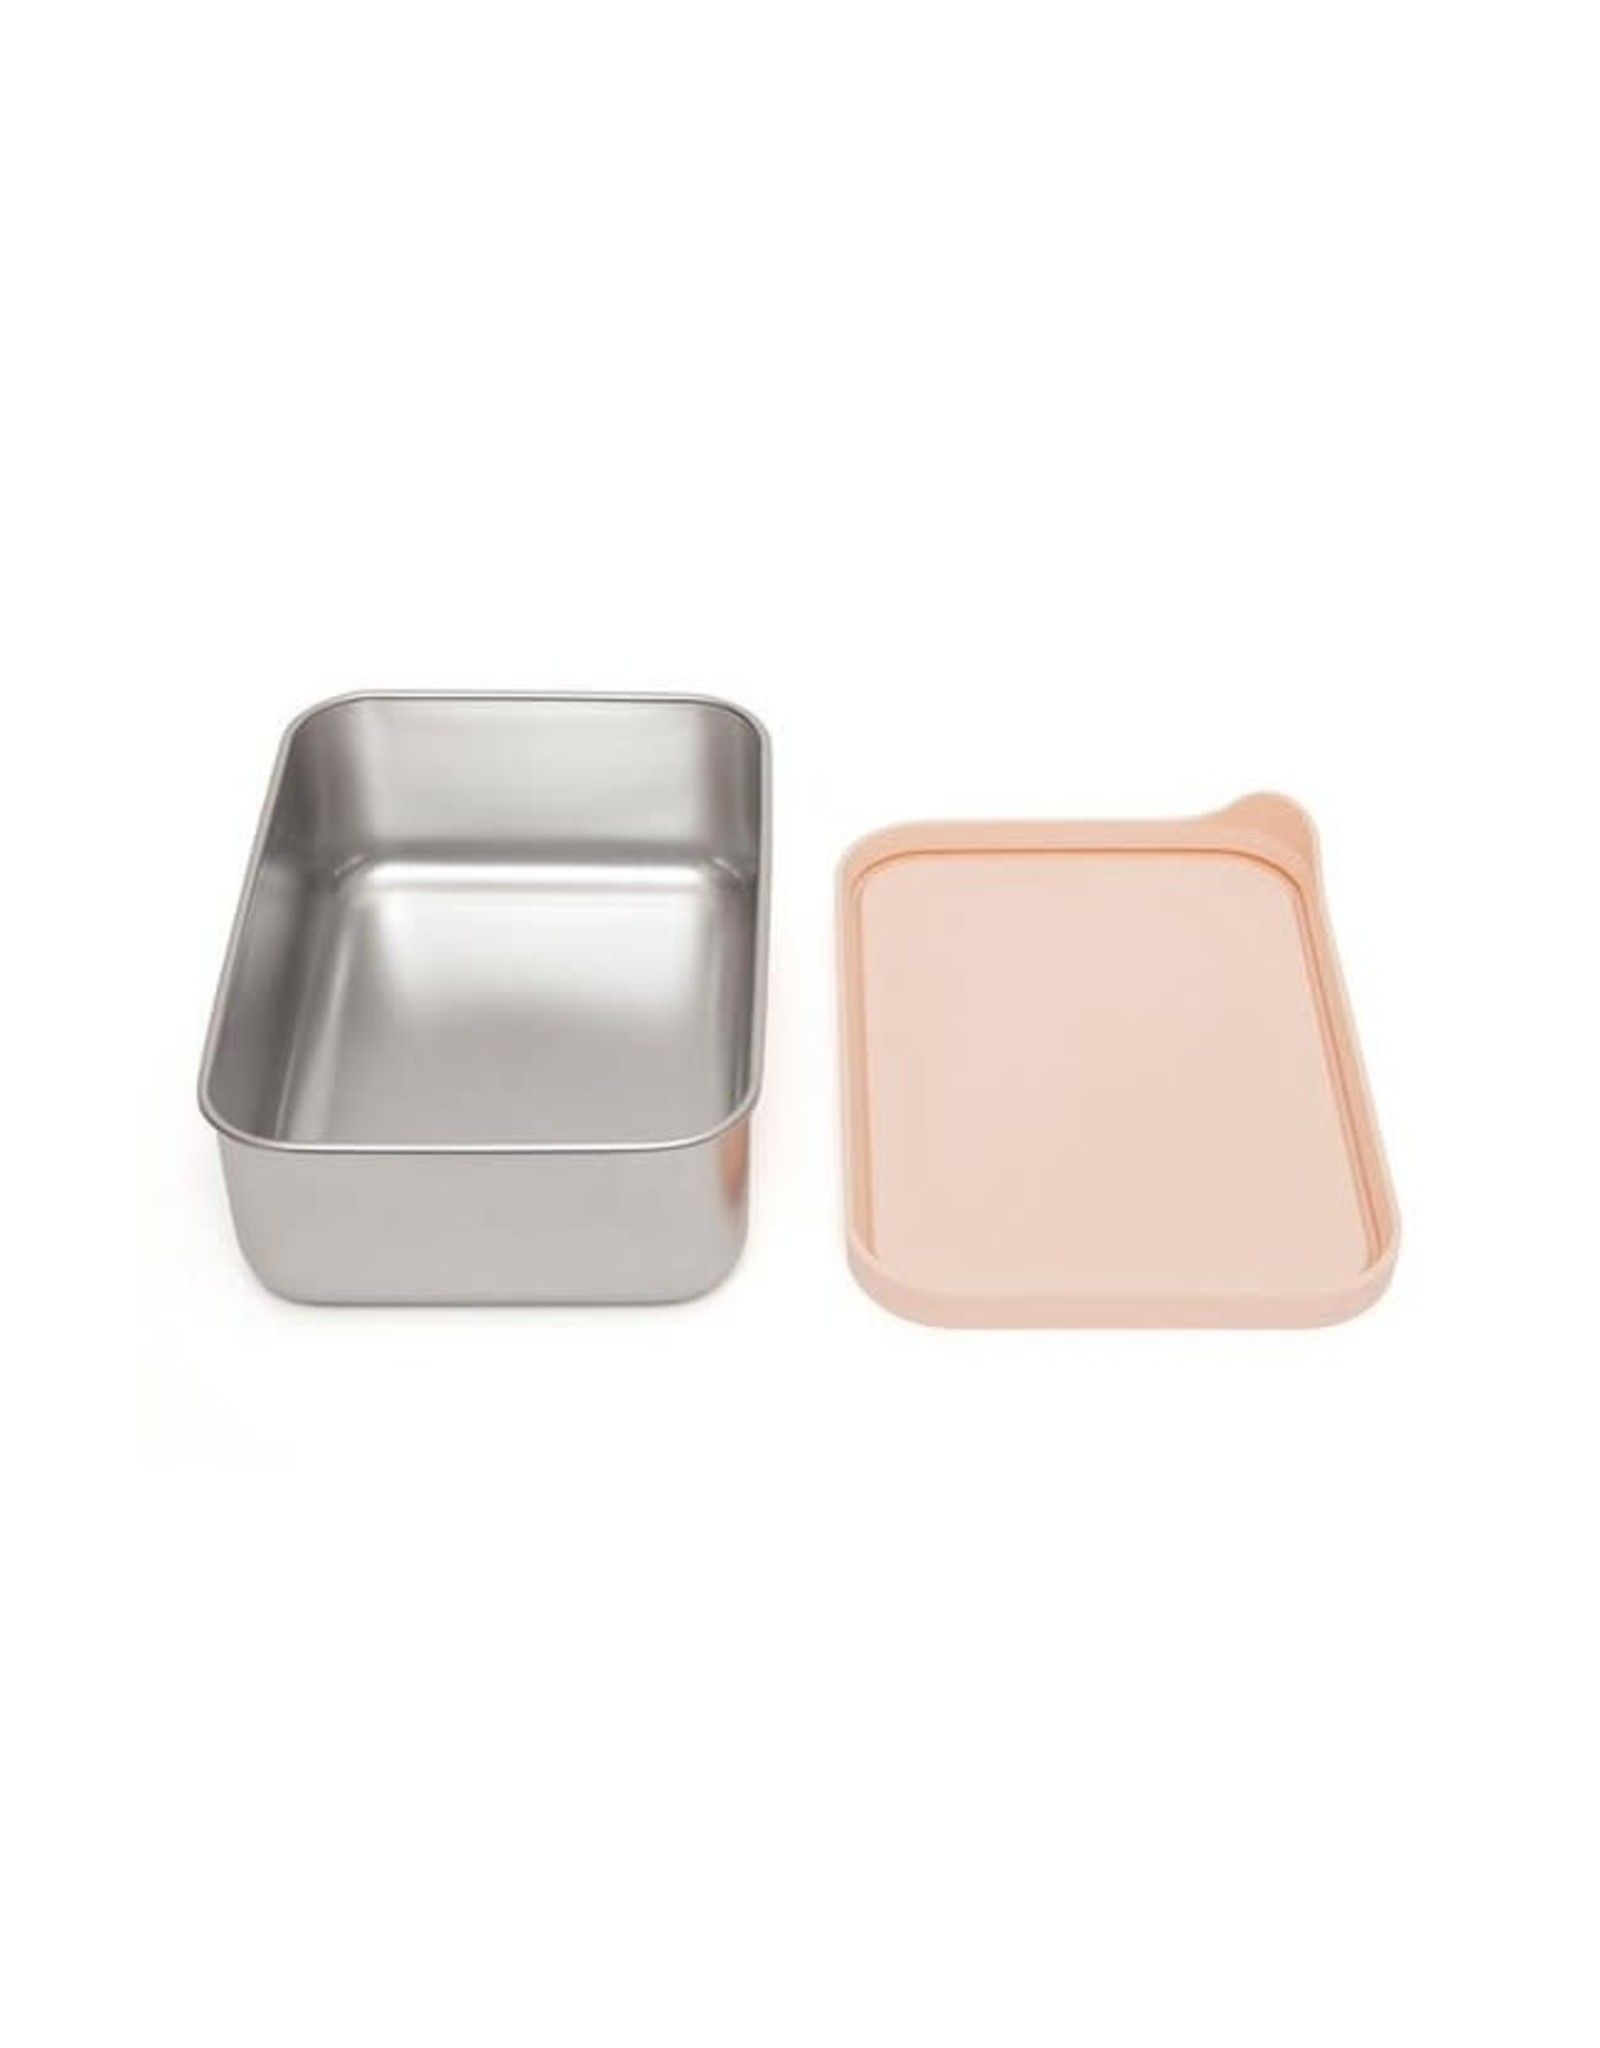 Petit Monkey stainless steel lunchbox dawn rose